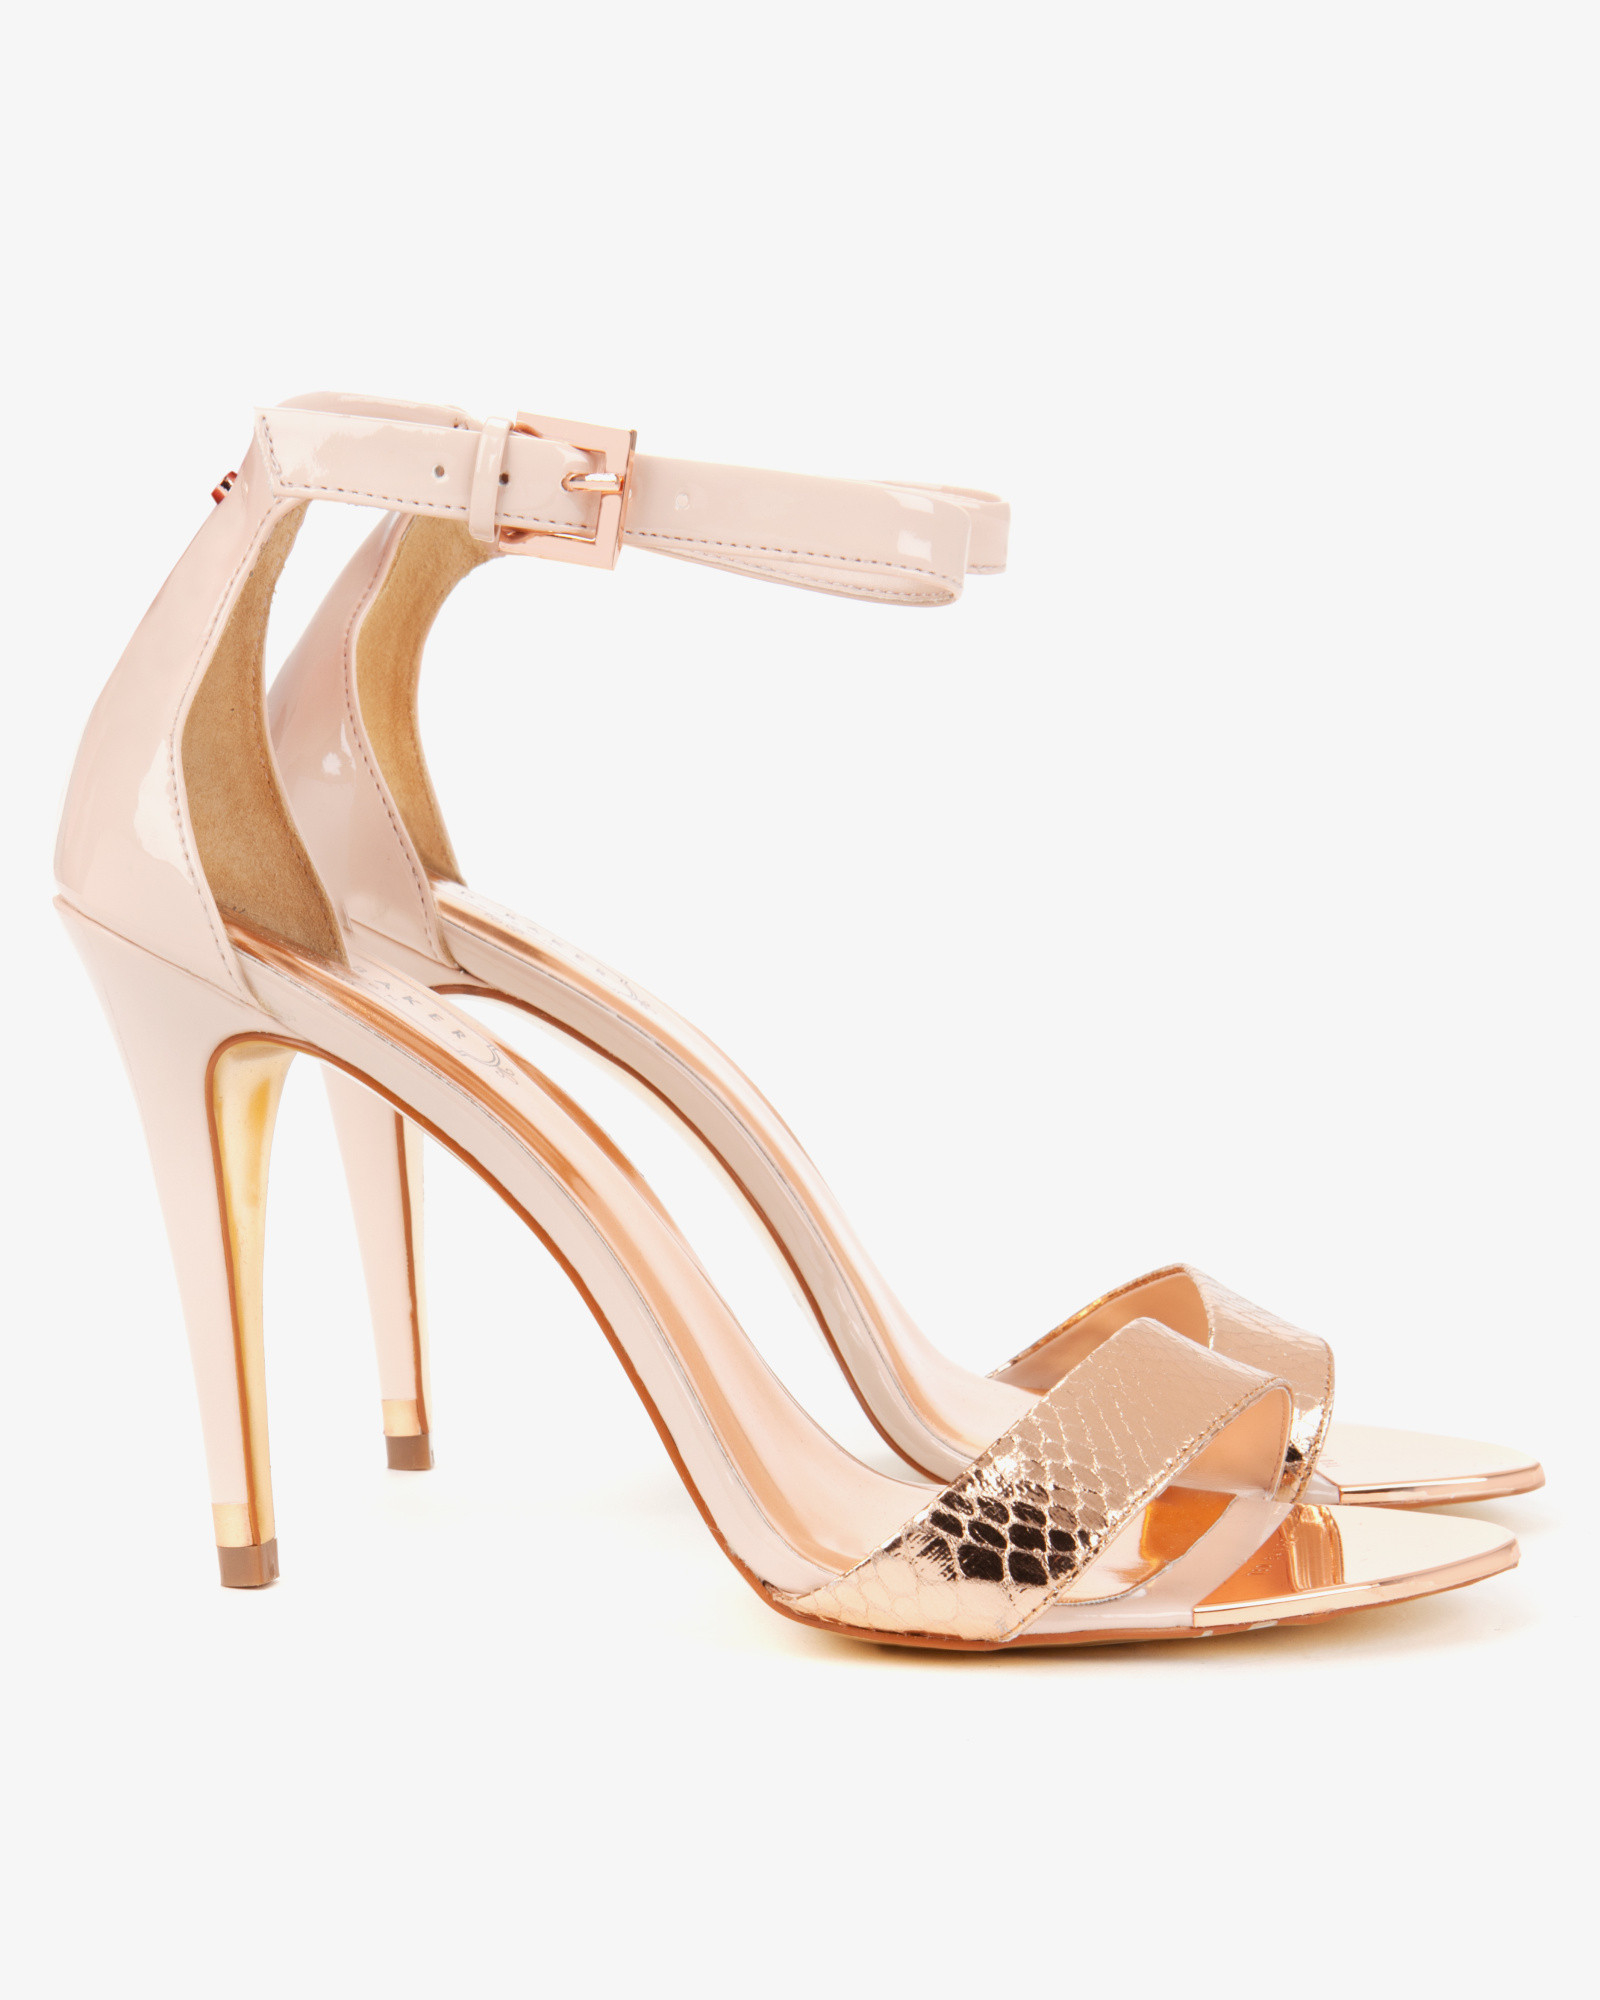 Lyst Ted Baker Ankle Strap Sandals In Pink